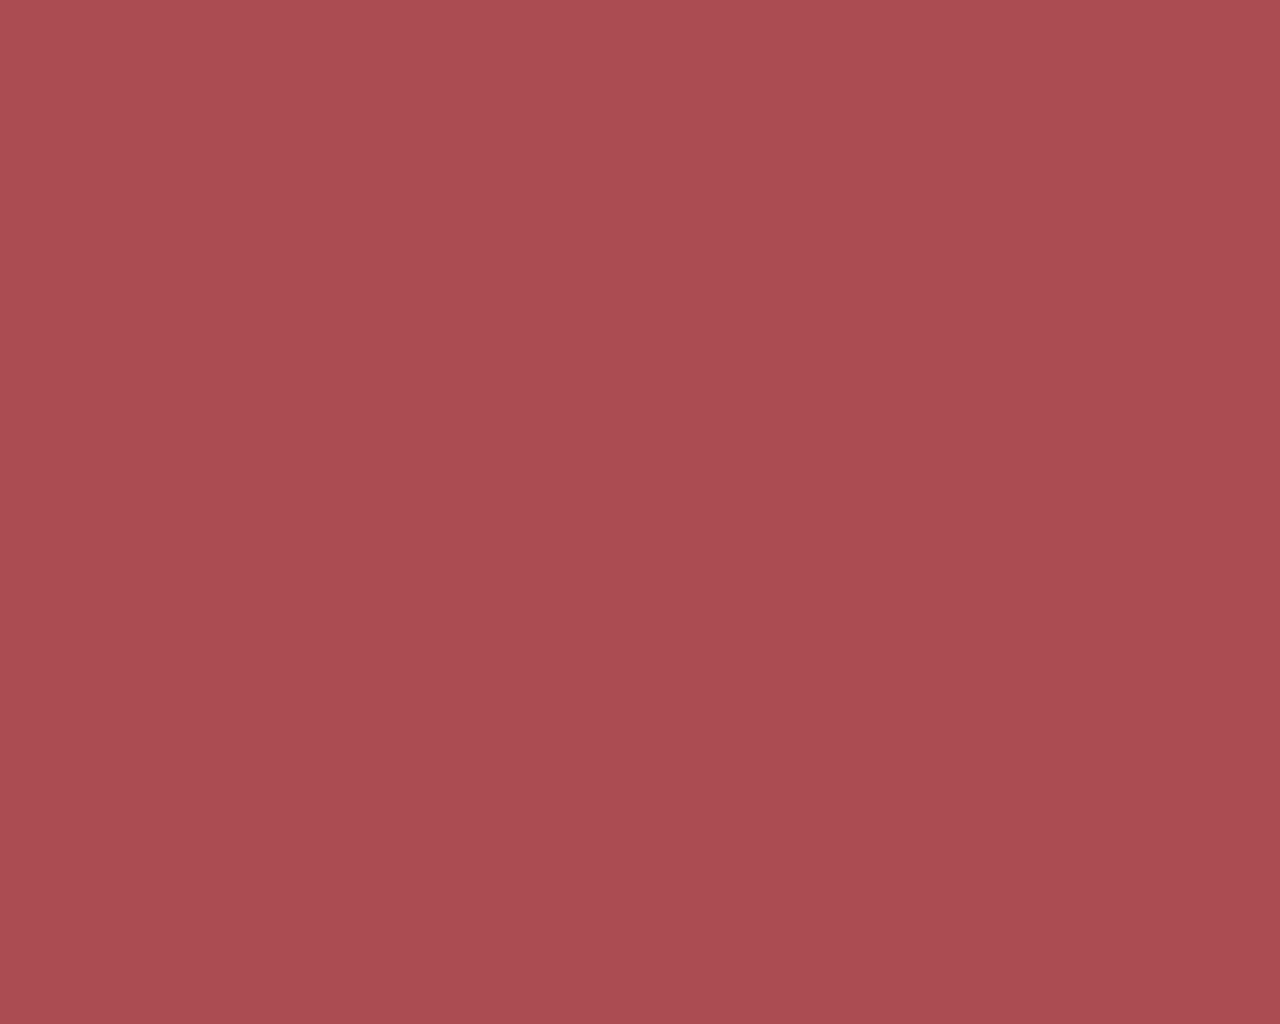 1280x1024 English Red Solid Color Background